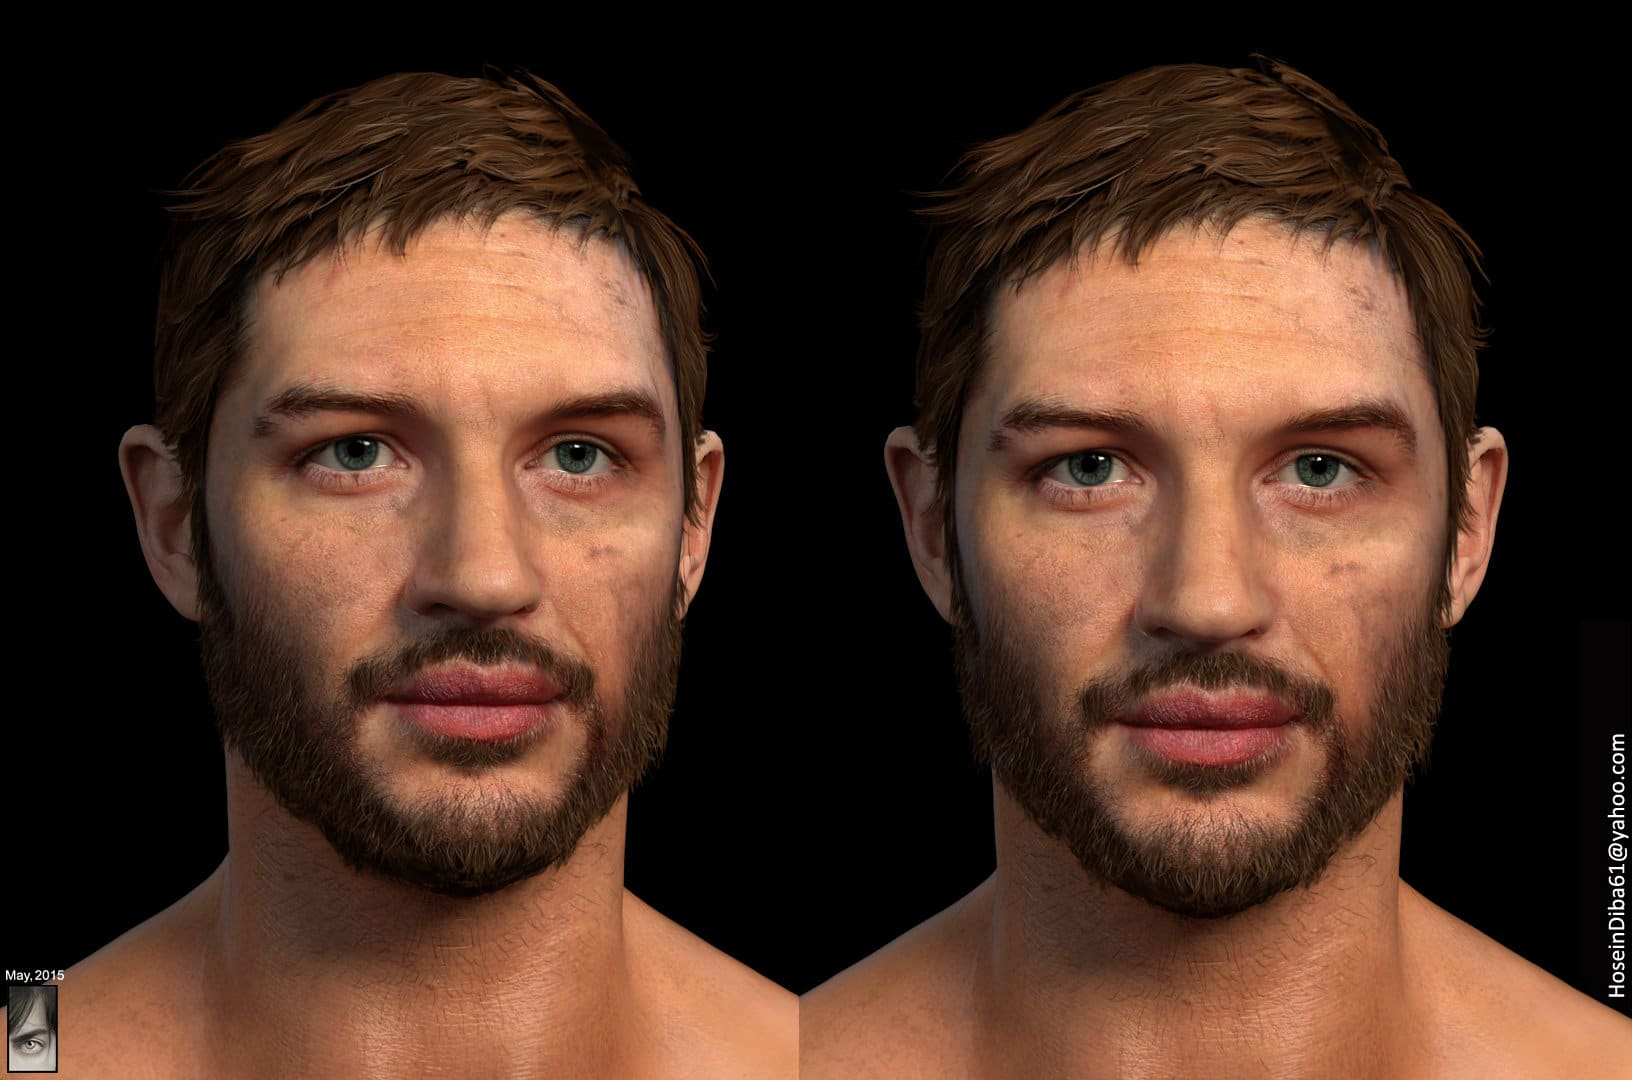 Celebs transformed into insanely realistic 3D characters 12